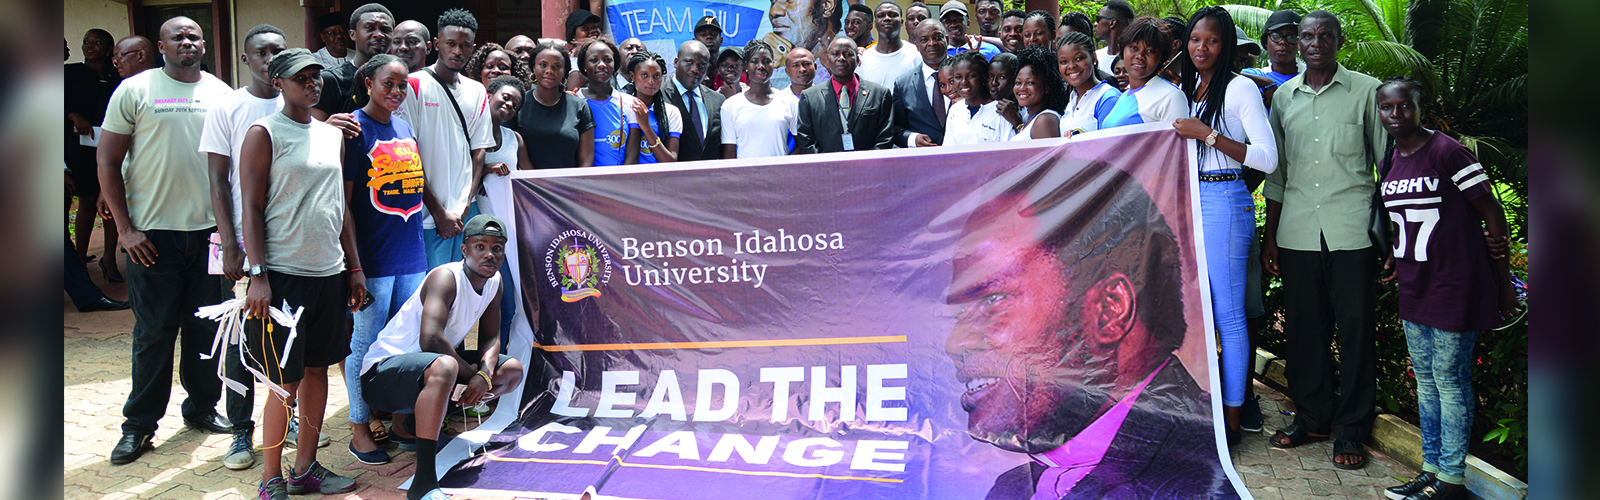 Students-at-Benson-holding-banner-lead-the-change